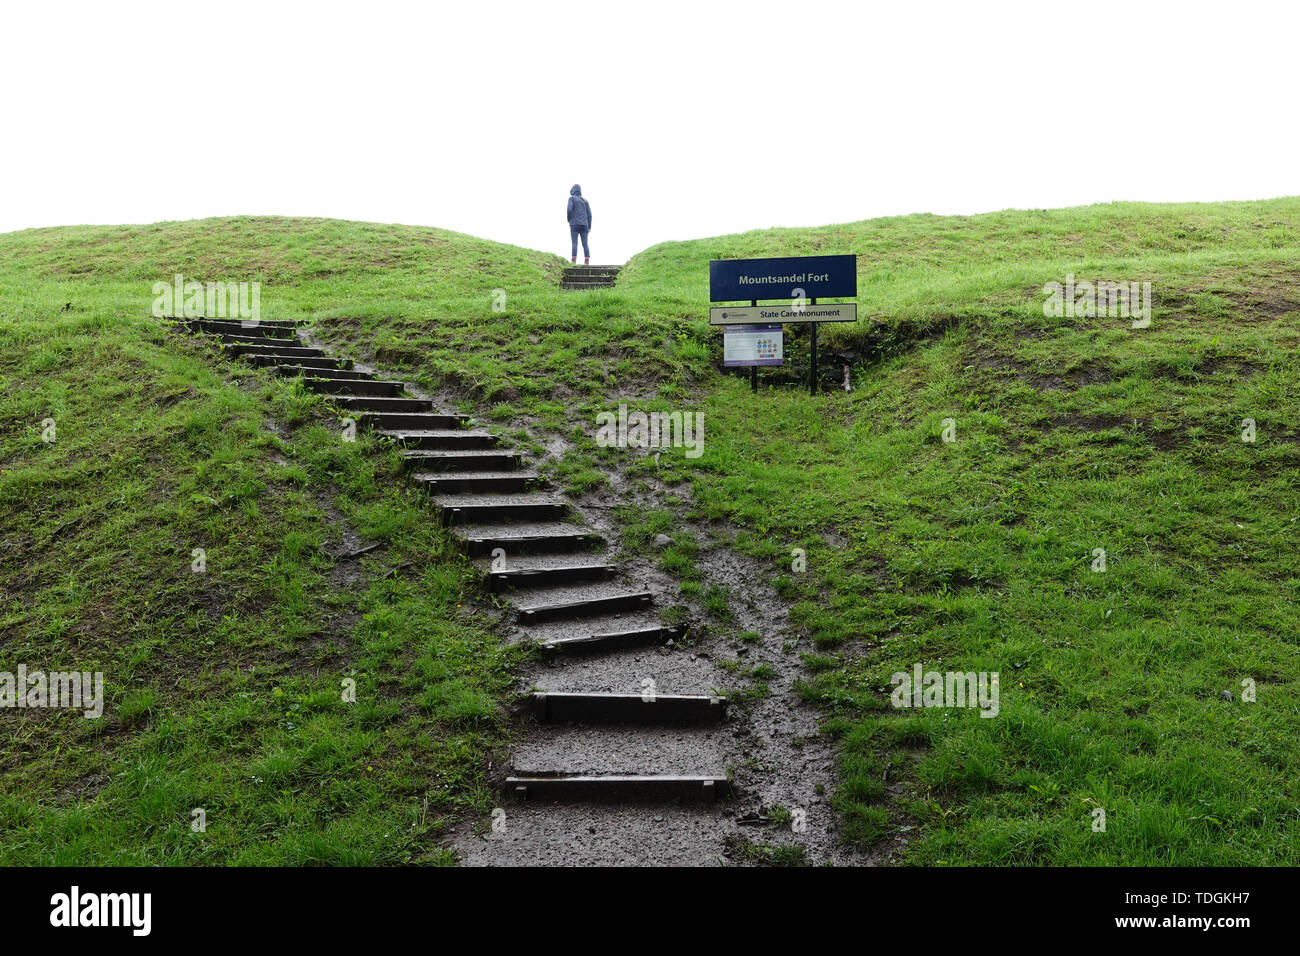 A person stands atop the staircase leading to the Mount Sandel Fort earthen ruins on a rainy day. The exact purpose of the earthwork remains unknown. - Stock Image